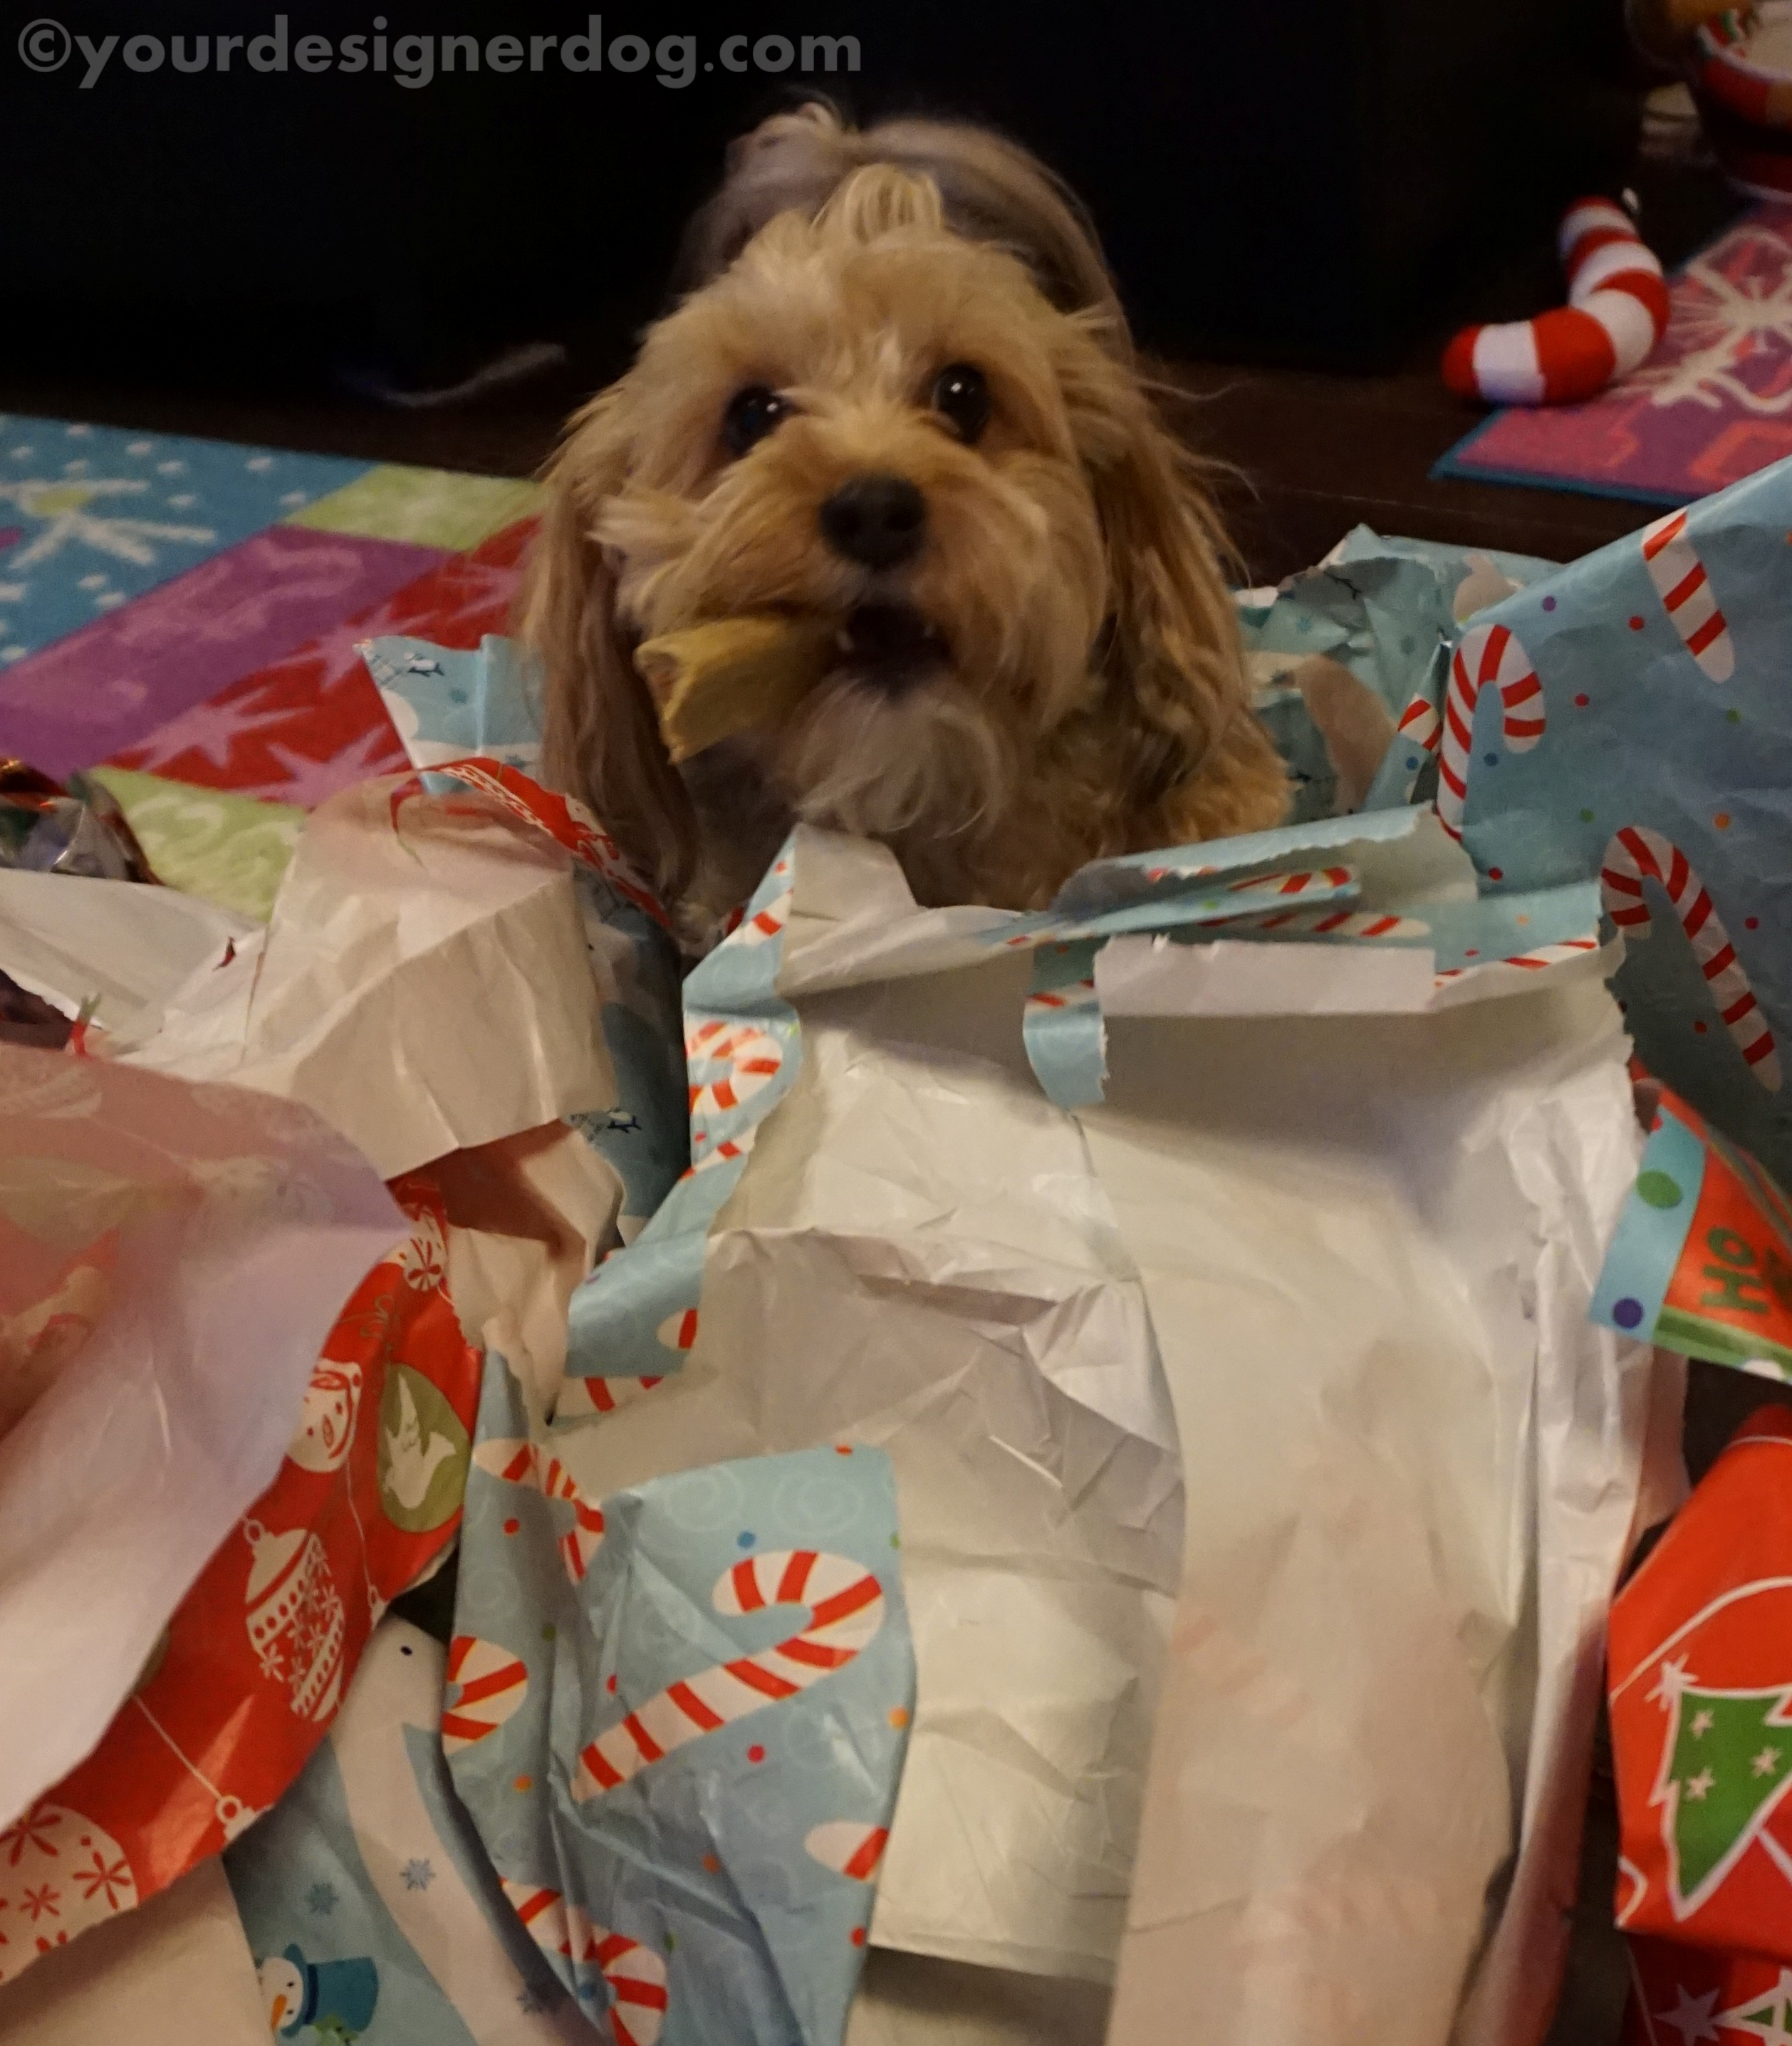 A New Use For Old Wrapping Paper